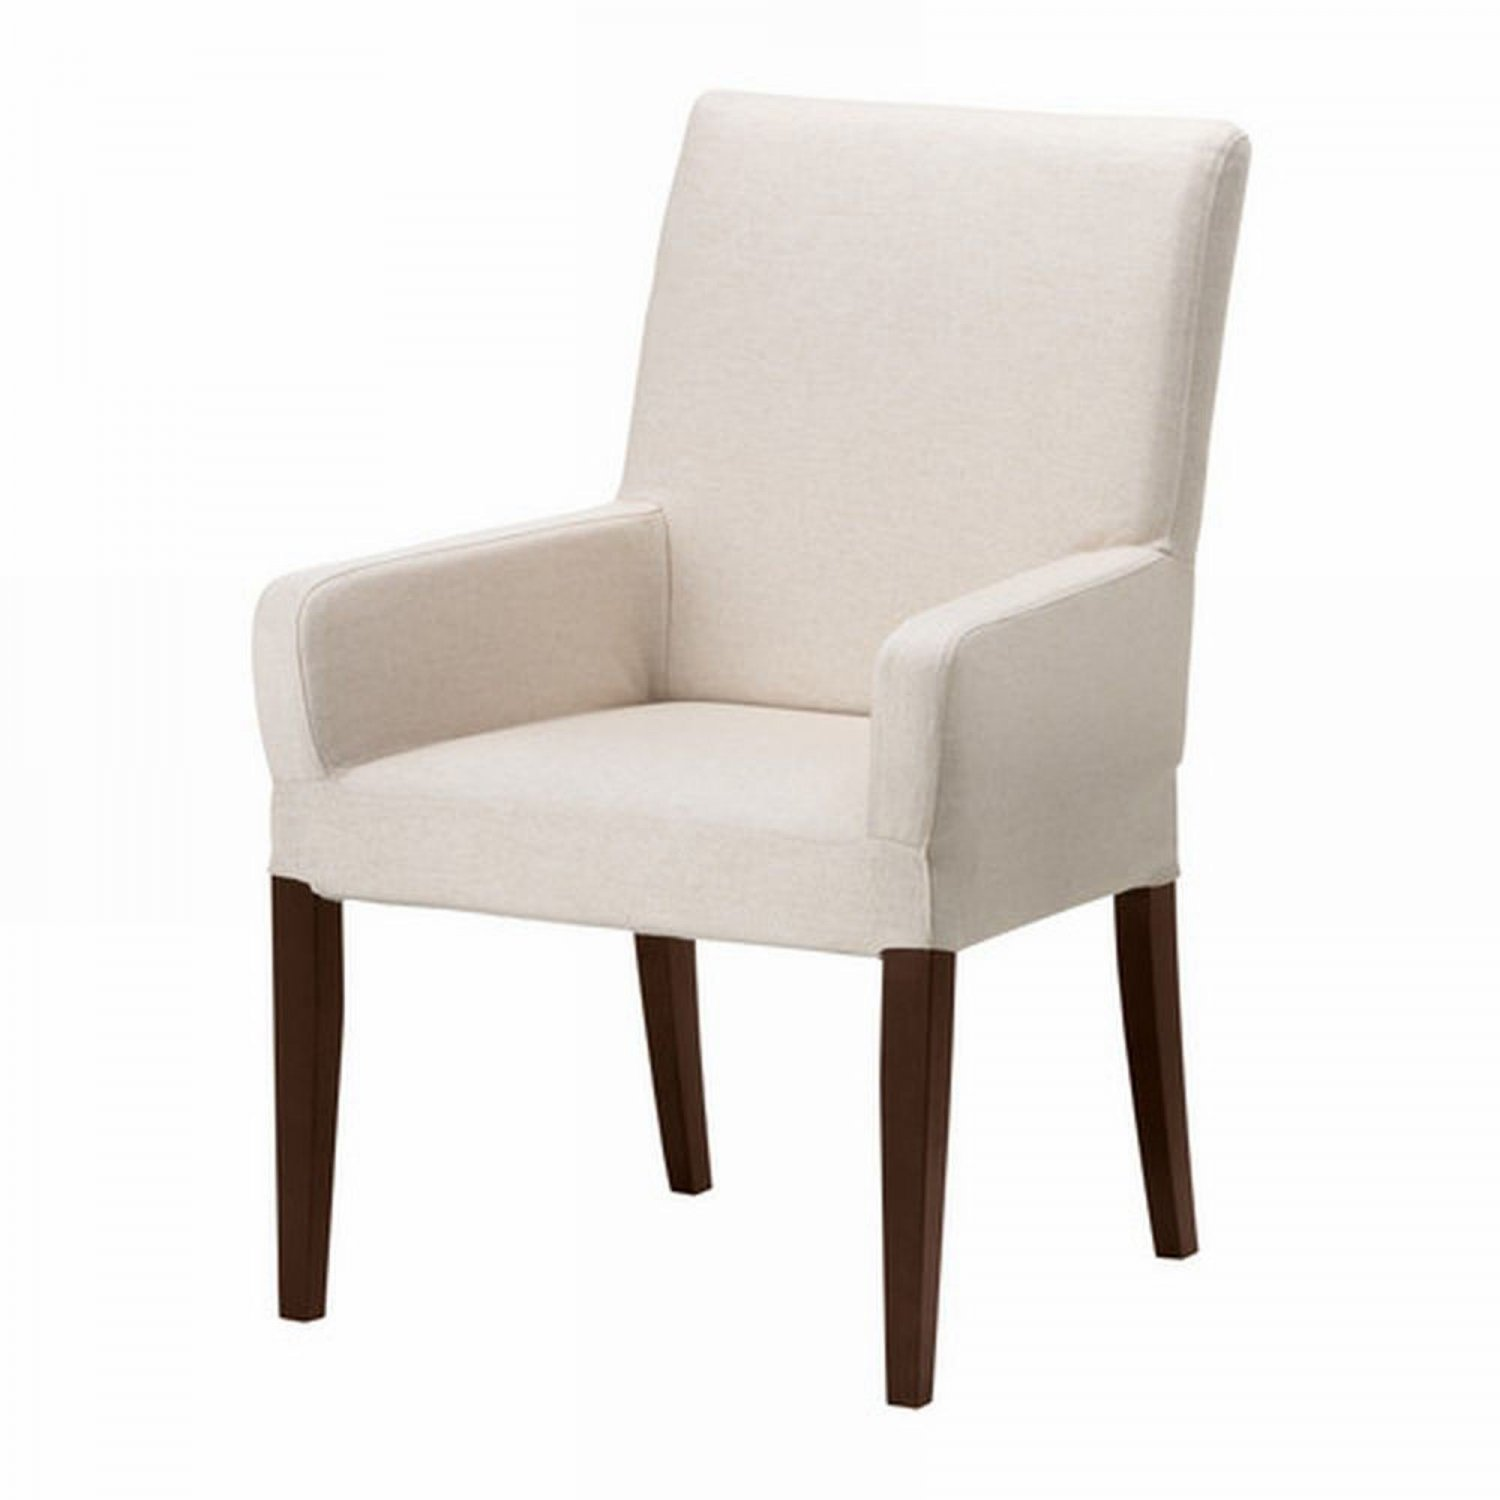 ikea dining table chair covers office chairs at target henriksdal w arms slipcover cover 21 quot 54cm